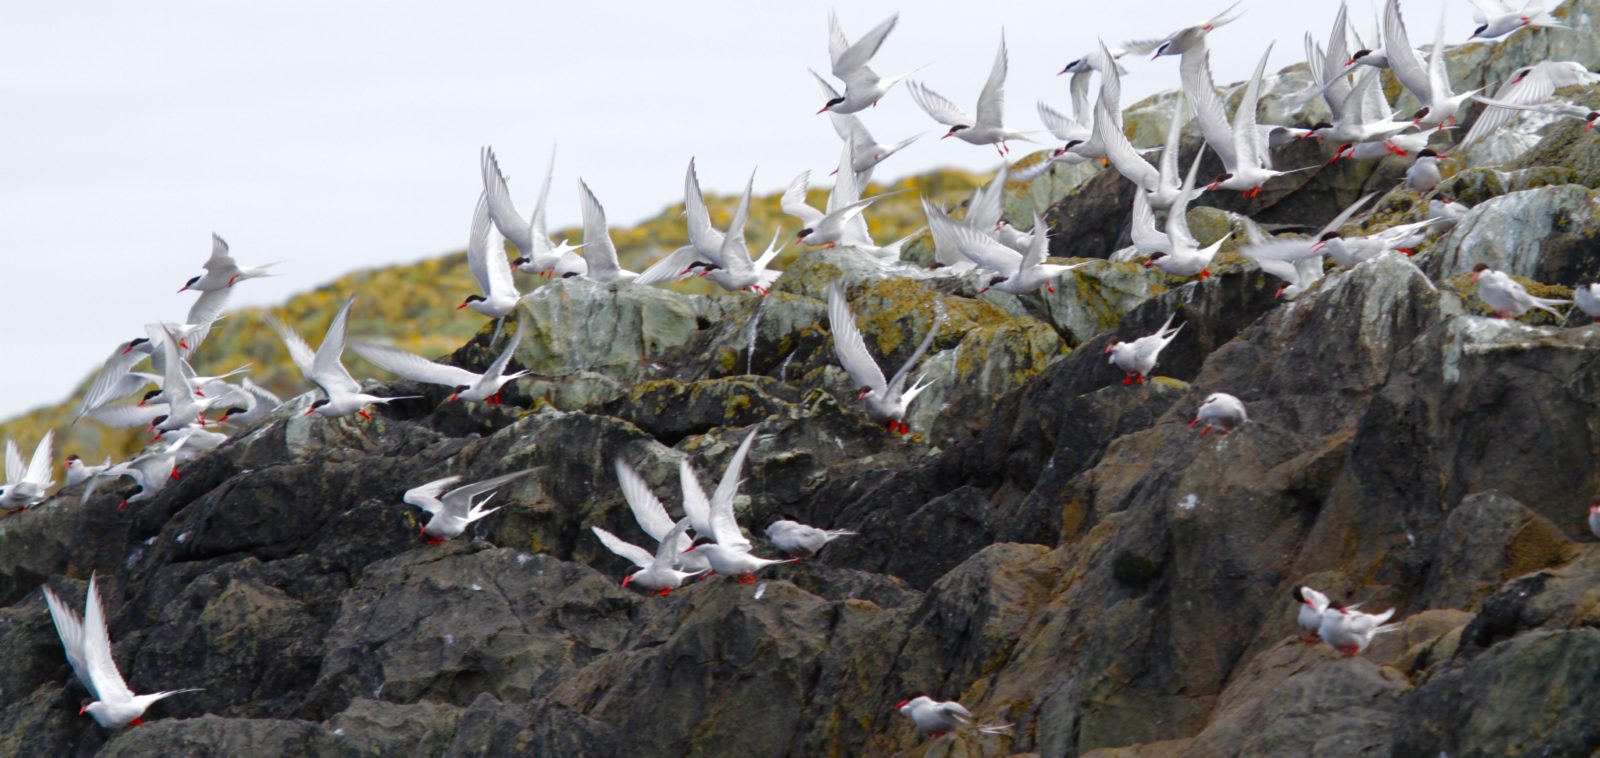 A flock of terns taking off from the Skerries